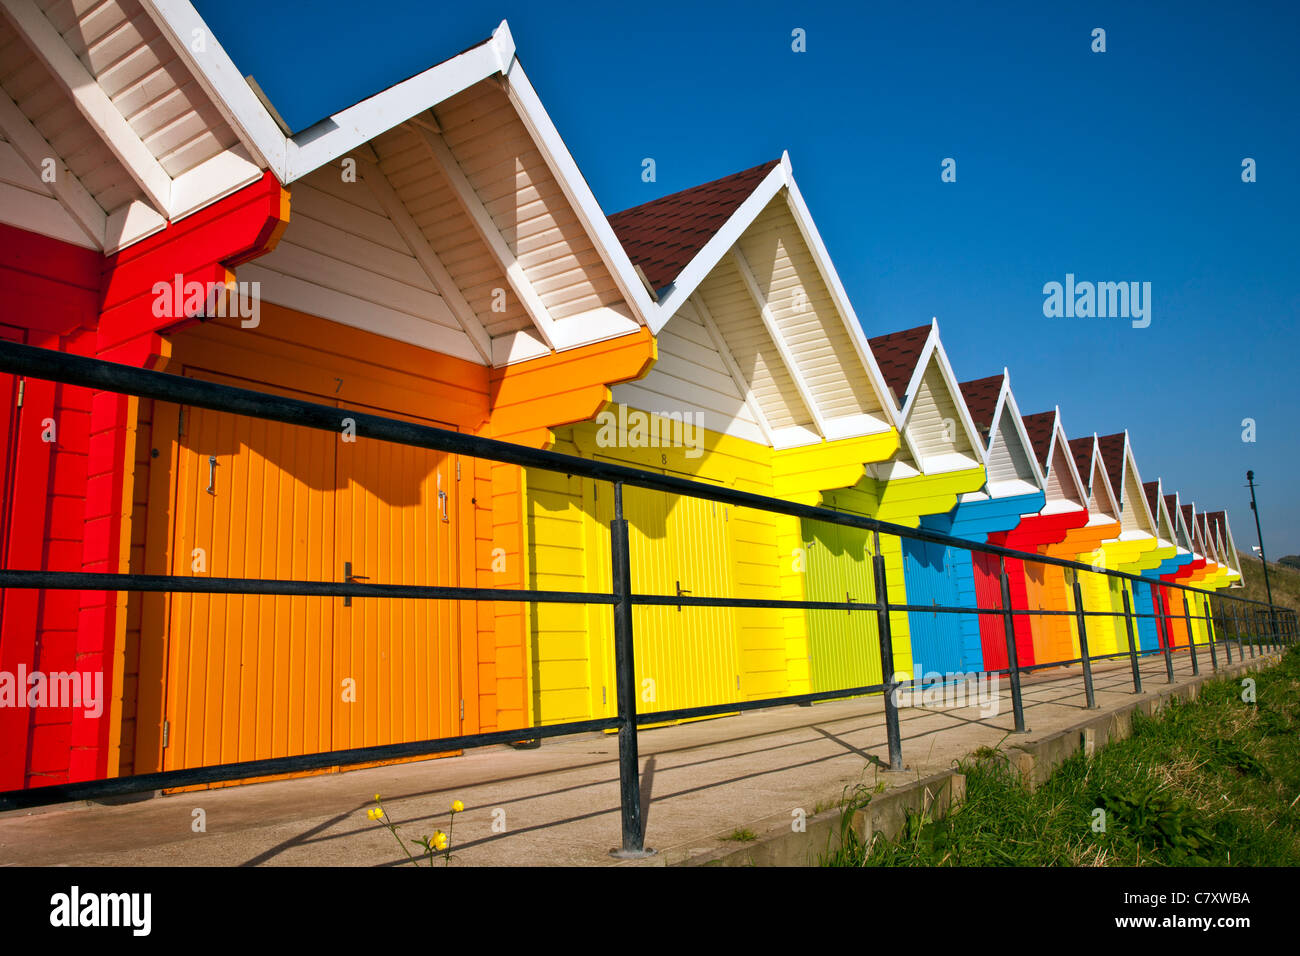 Beach Huts North Bay Scarborough - Stock Image